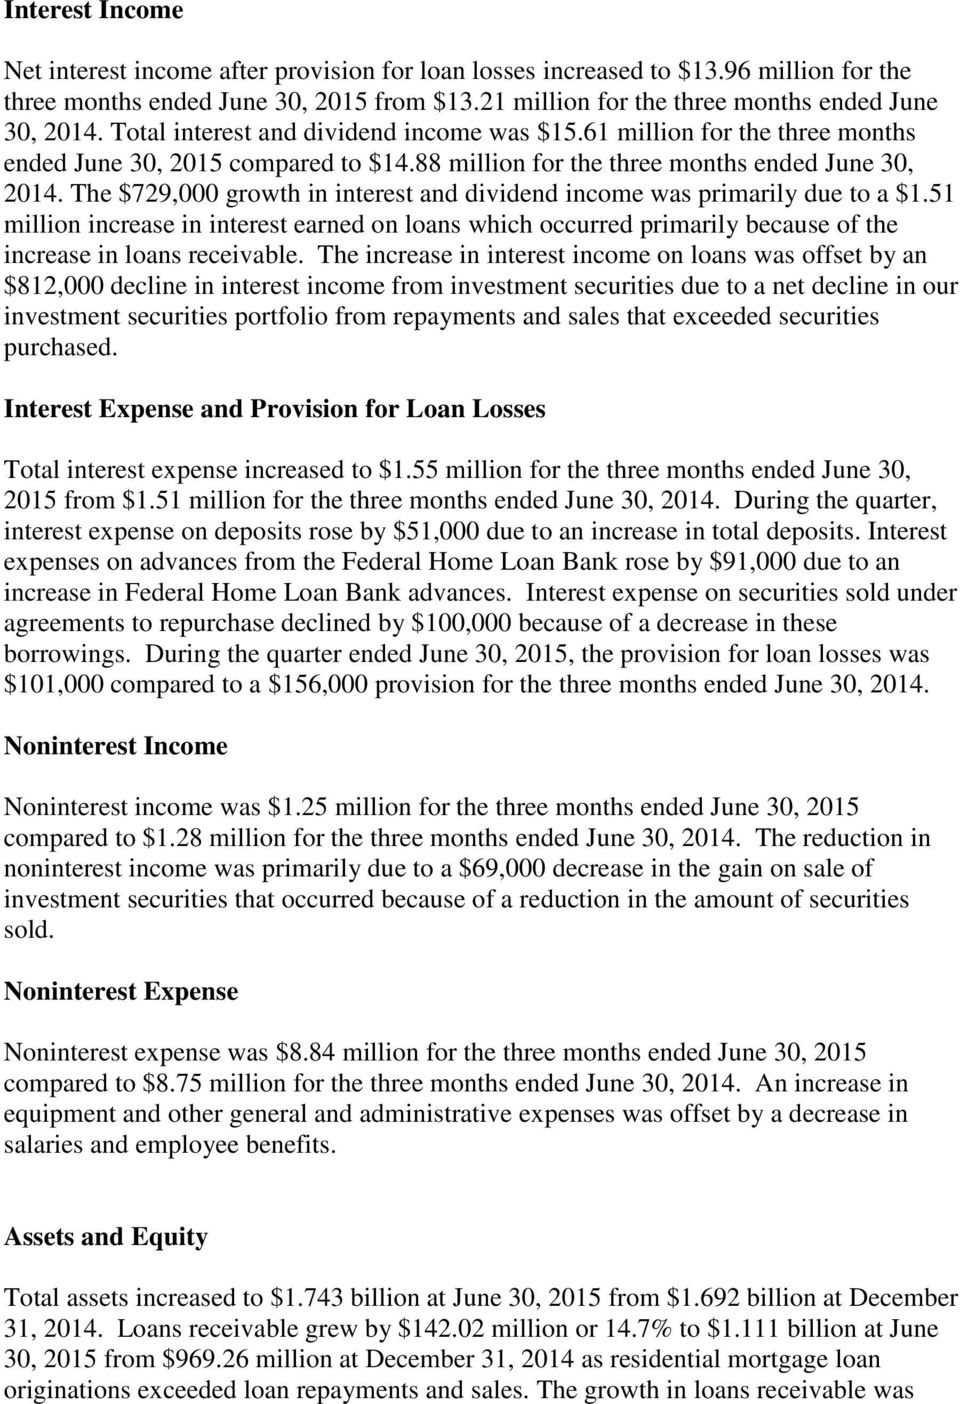 The $729,000 growth in interest and dividend income was primarily due to a $1.51 million increase in interest earned on loans which occurred primarily because of the increase in loans receivable.